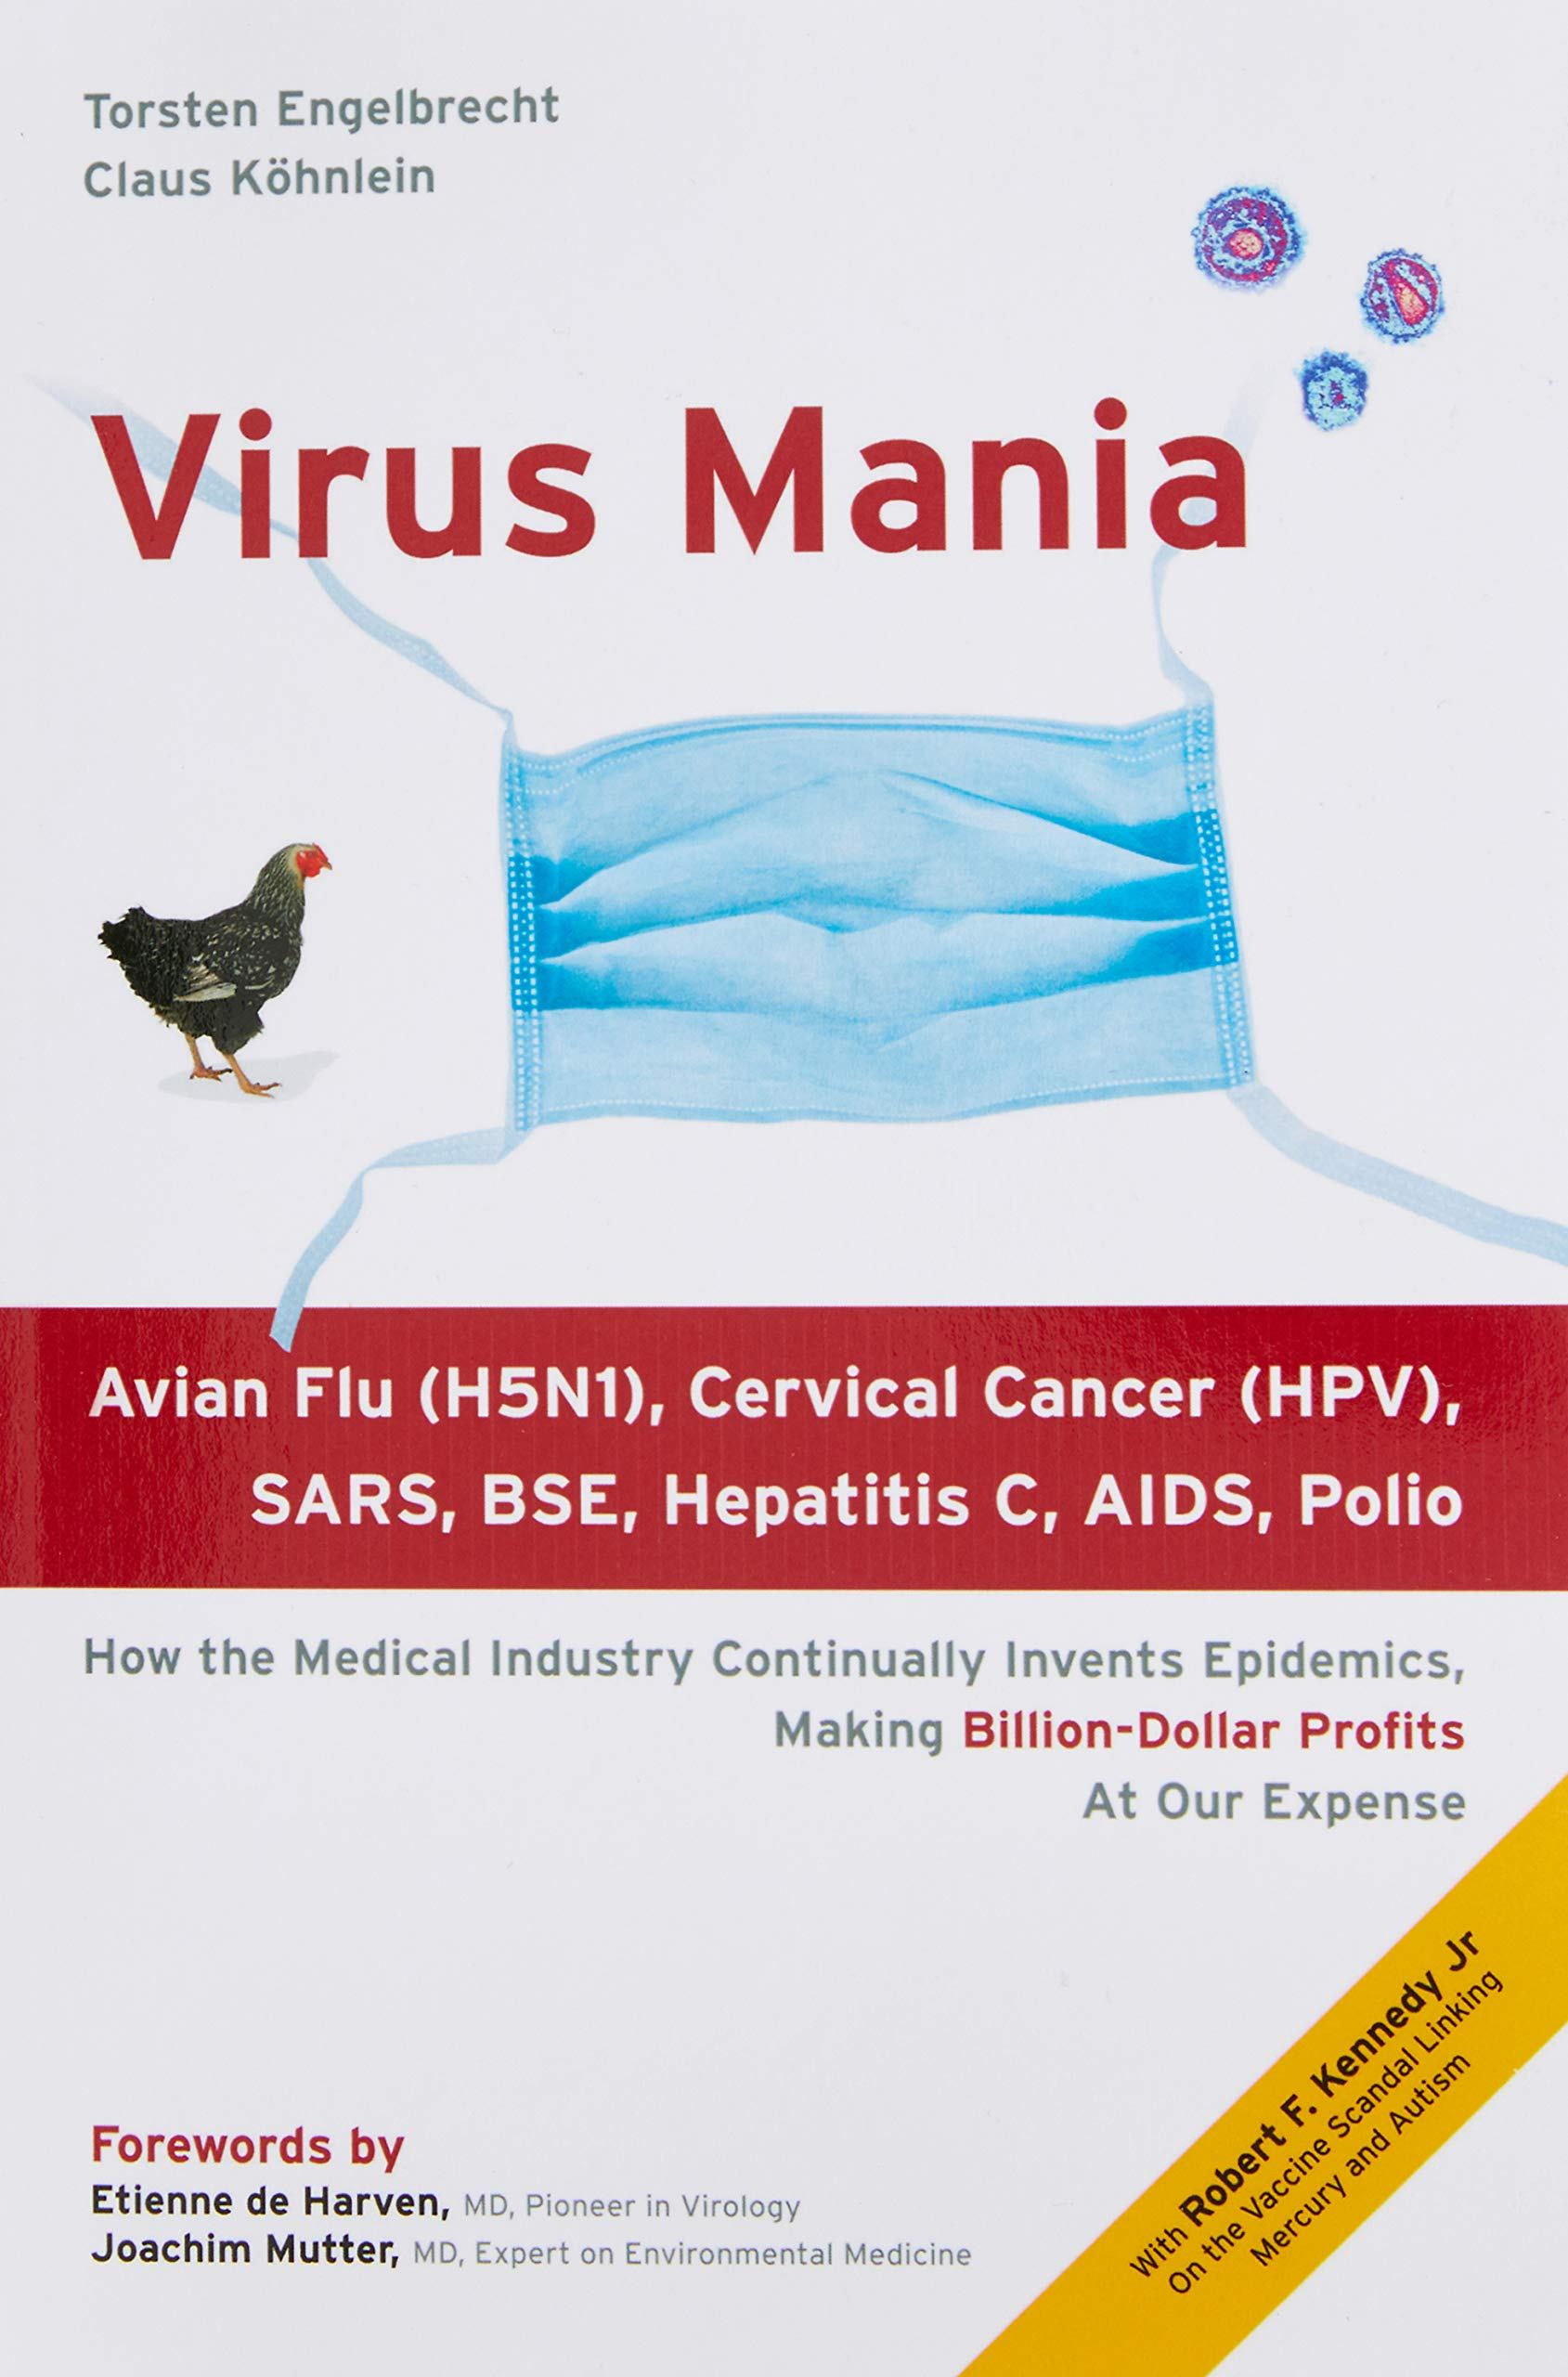 Virus Mania: How the Medical Industry Continually Invents Epidemics, Making Billion-Dollar Profits At Our Expense: Amazon.es: Engelbrecht, Torsten, Kennedy, Robert, Harven, Etienne de, Mutter, Joachim: Libros en idiomas extranjeros